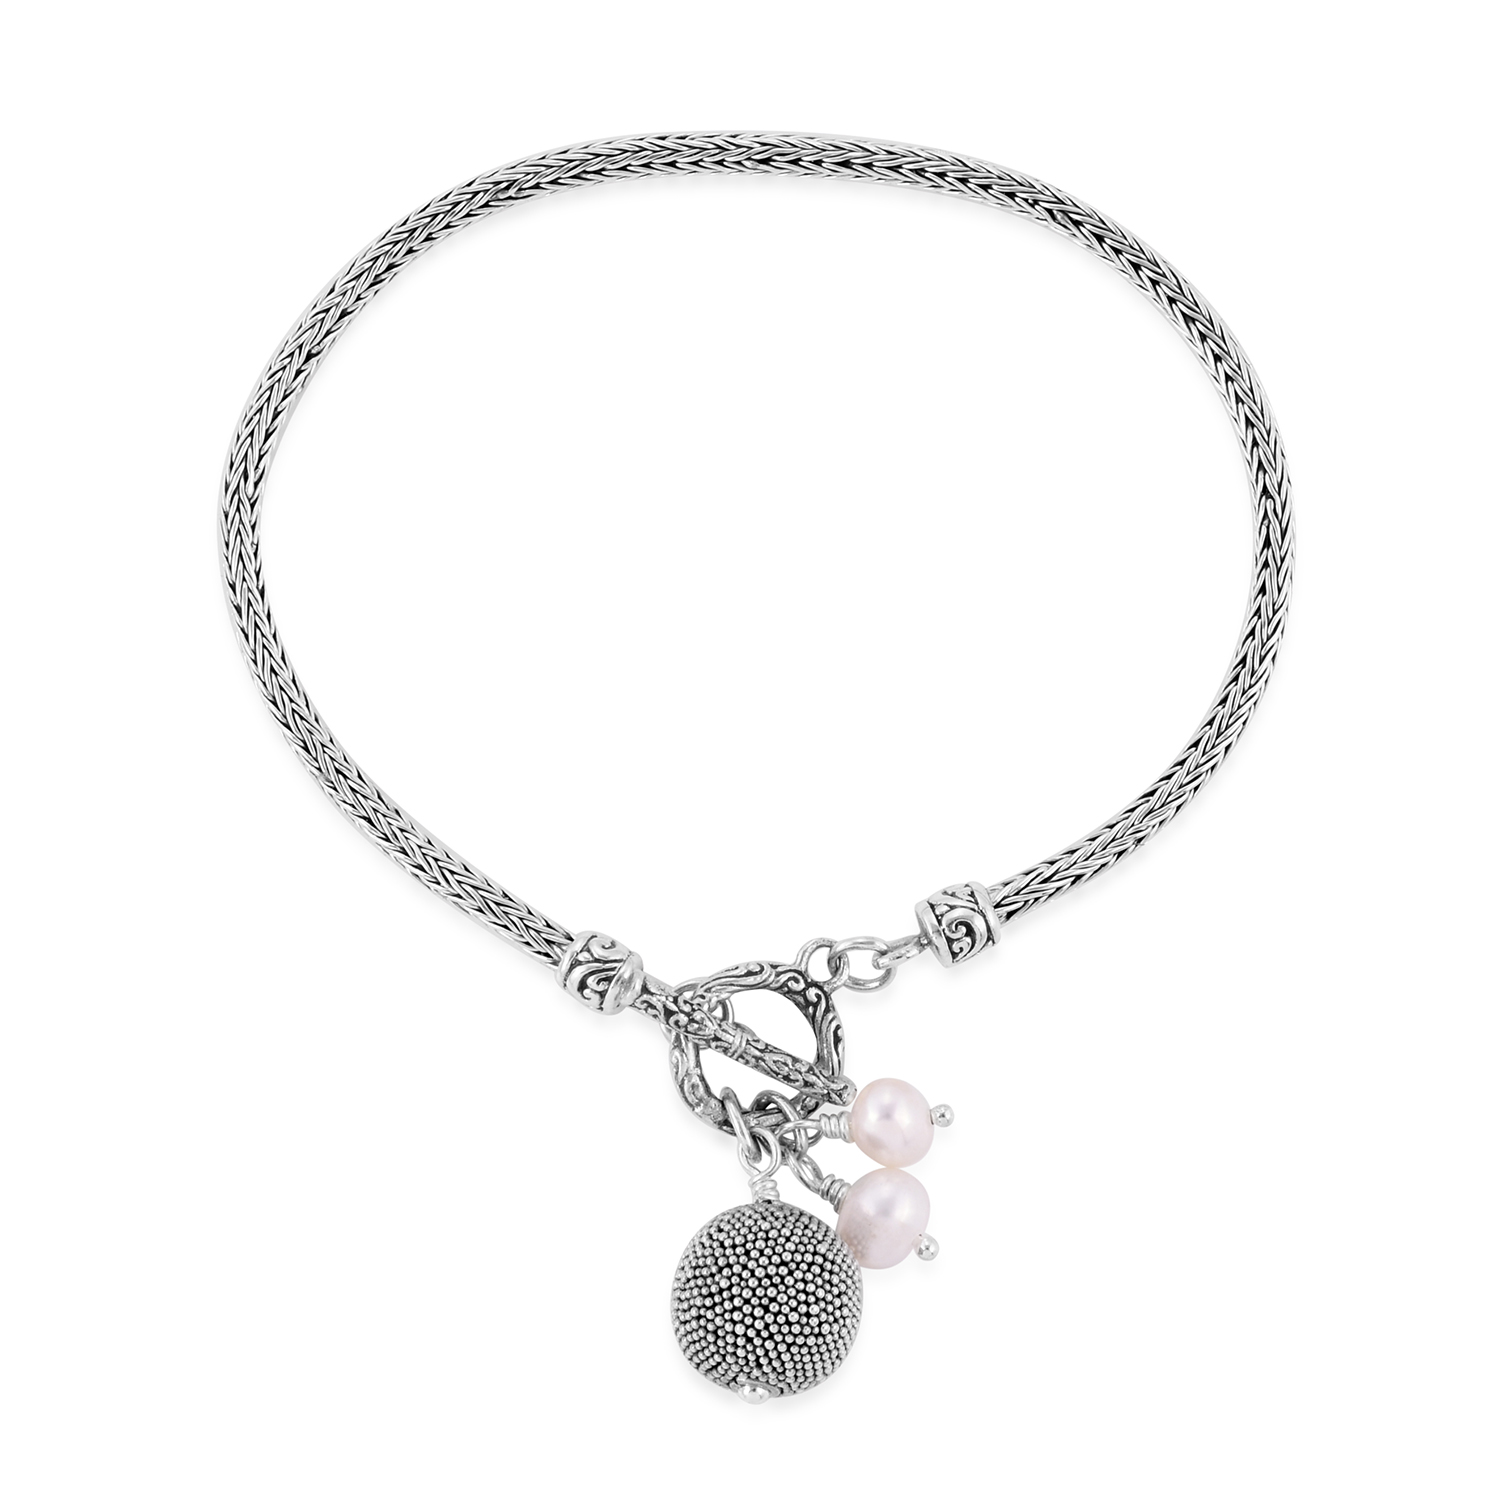 7898b4fd992efa Bali Legacy Collection Freshwater Pearl Sterling Silver Toggle Clasp  Bracelet (7.00 In) | Shop LC